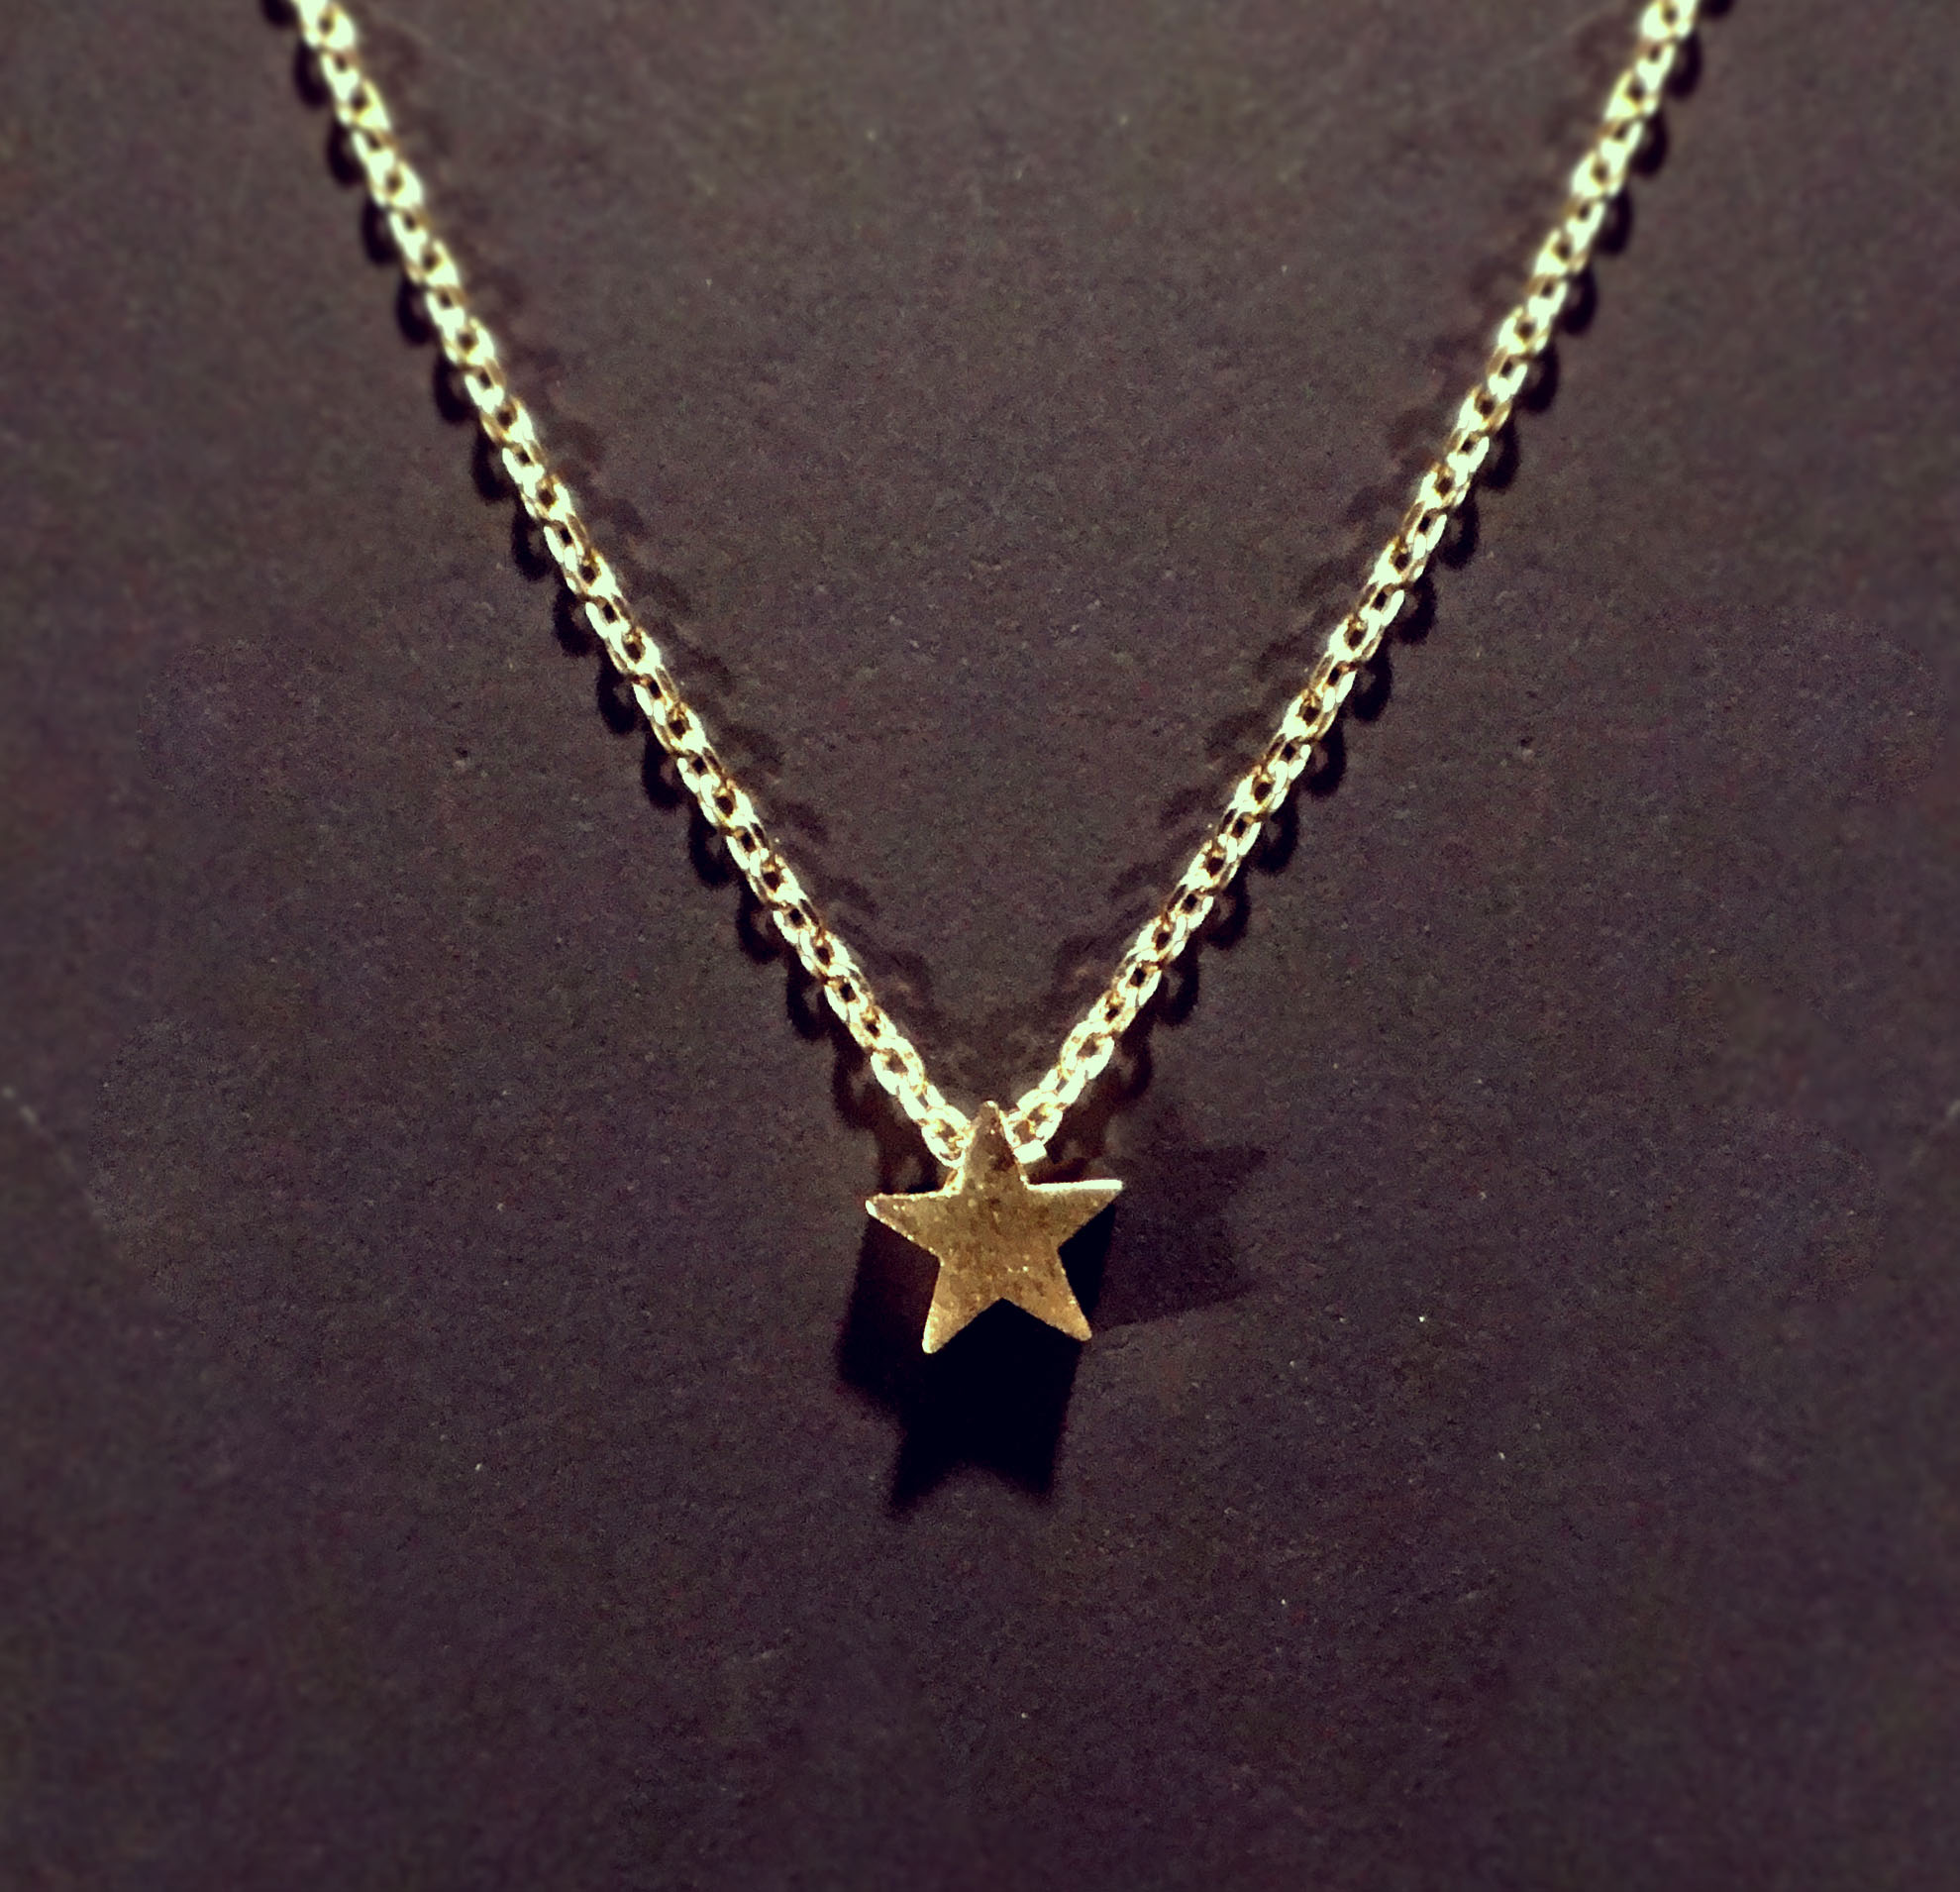 b89f5cb8ee1013 Tiny, Star Necklace, on Delicate 15